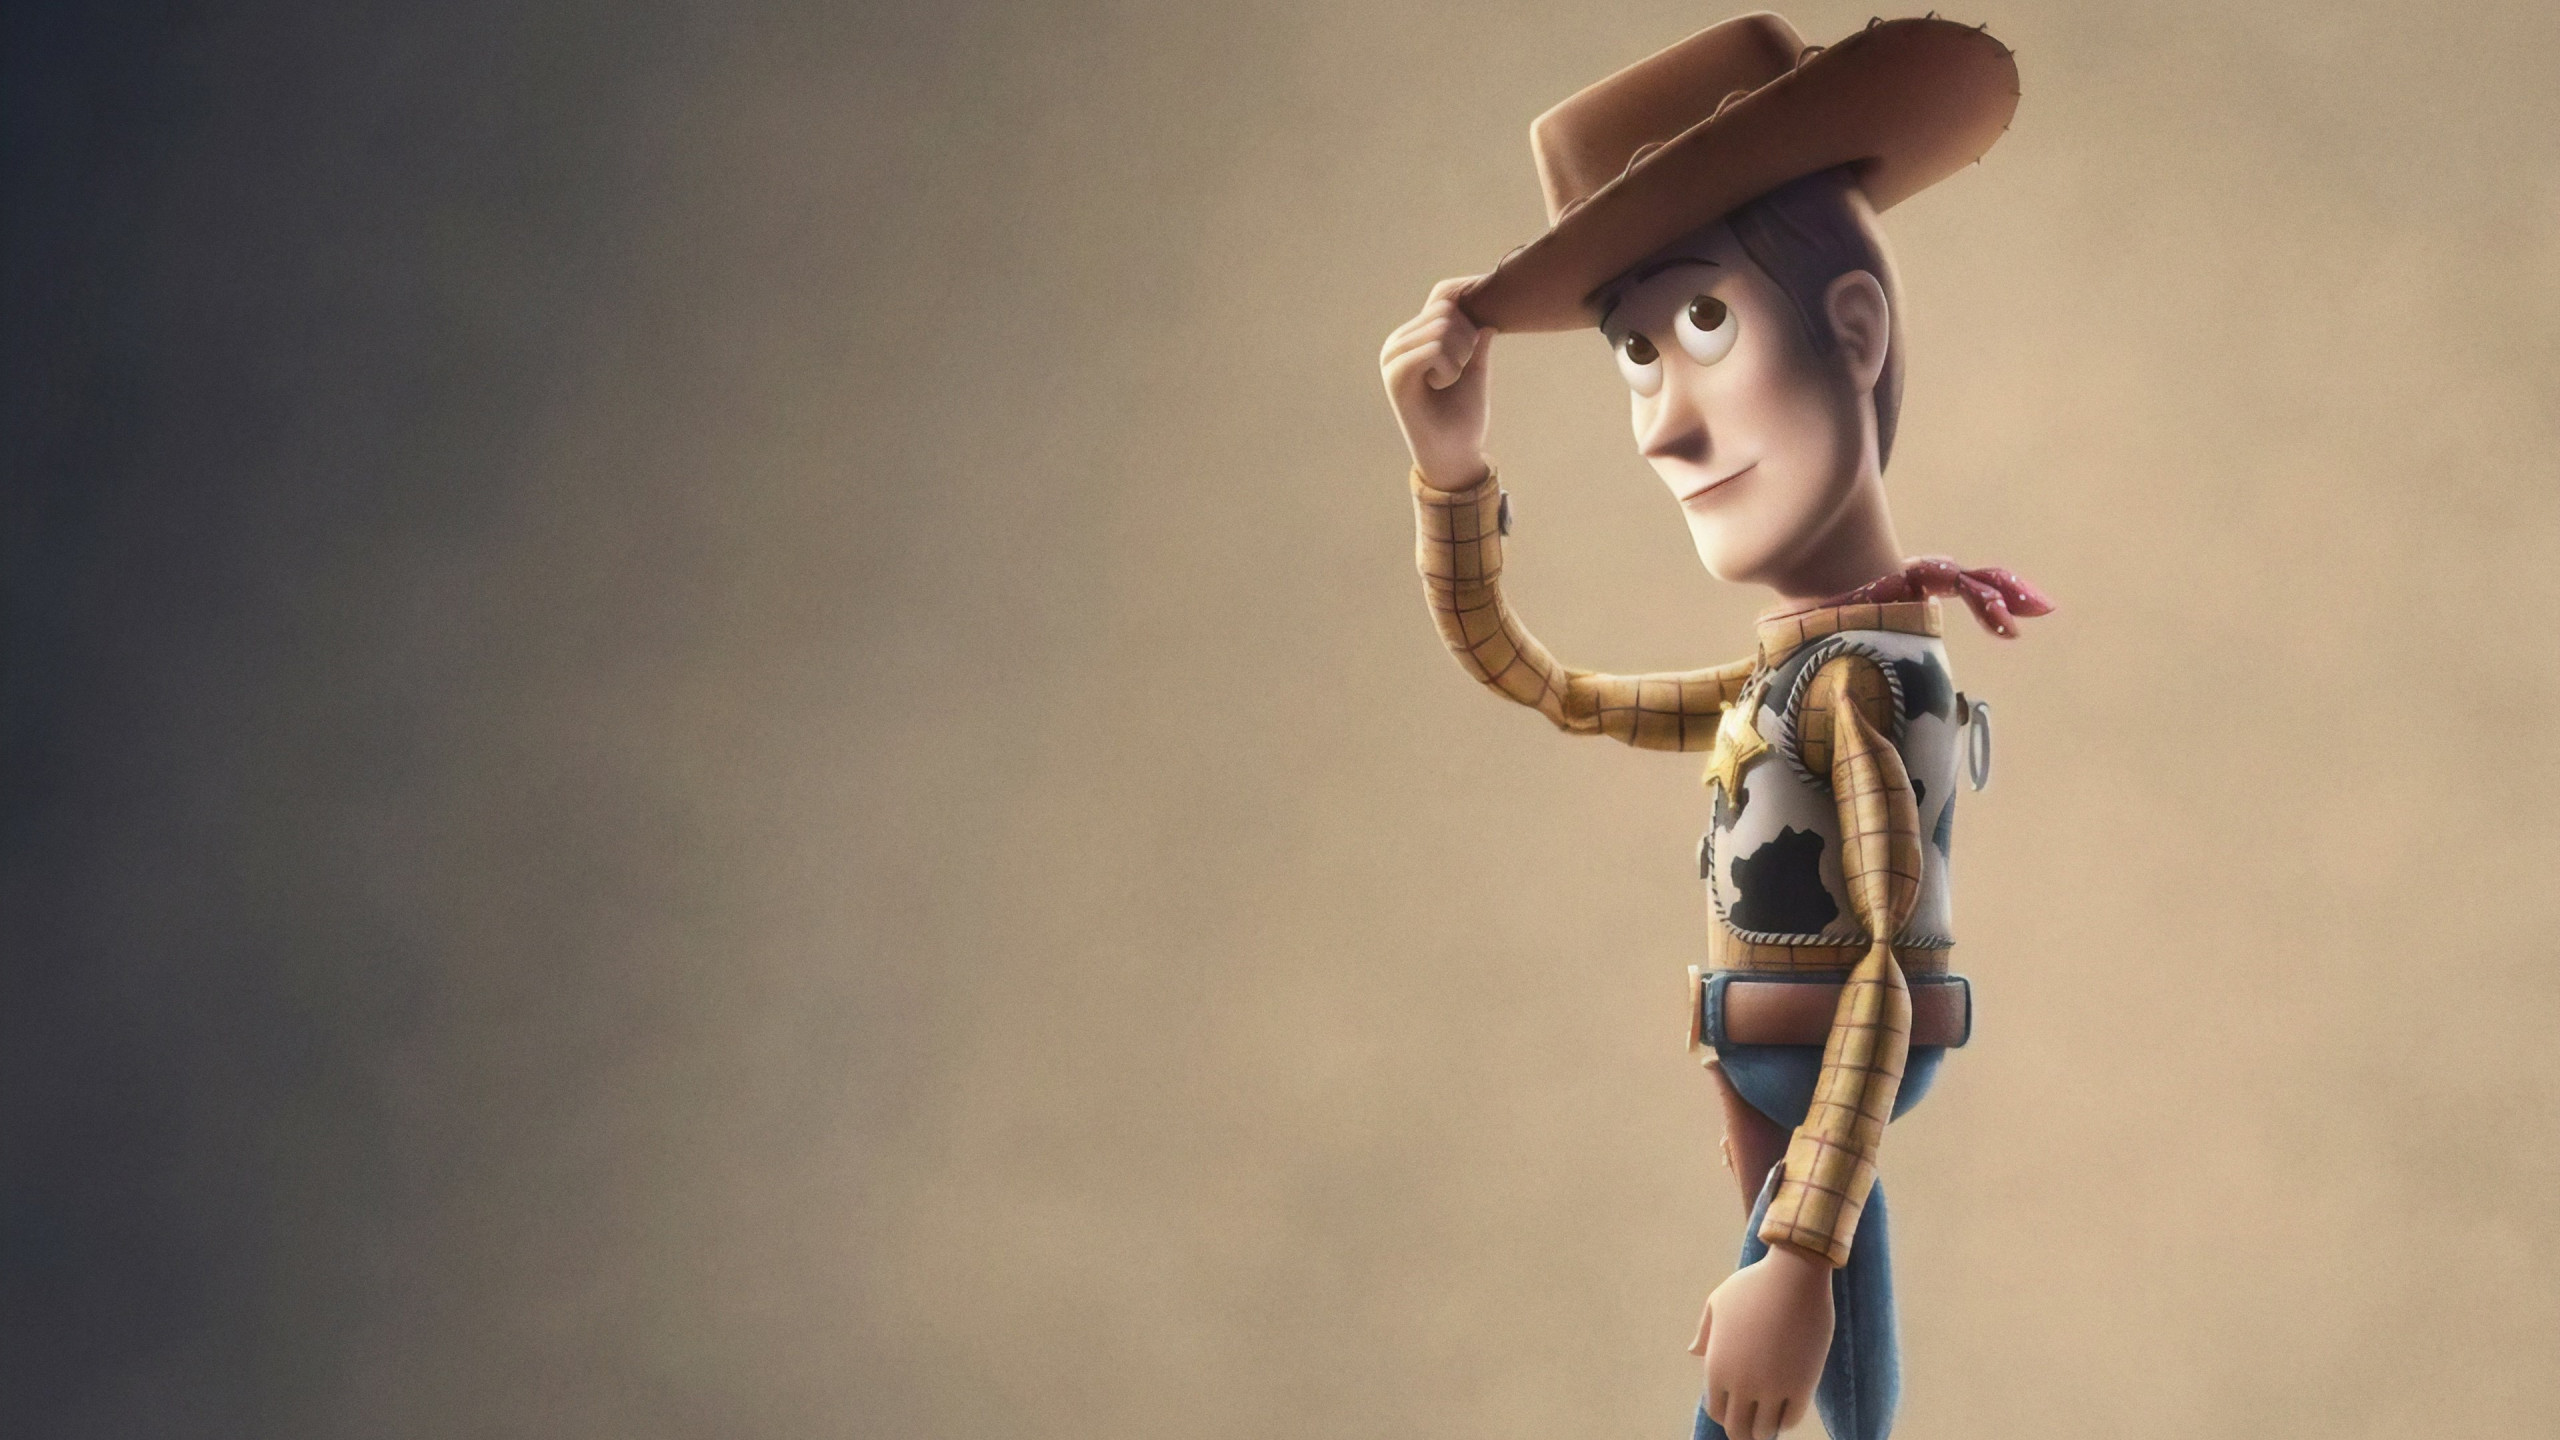 Toy Story 4 wallpaper 2560x1440